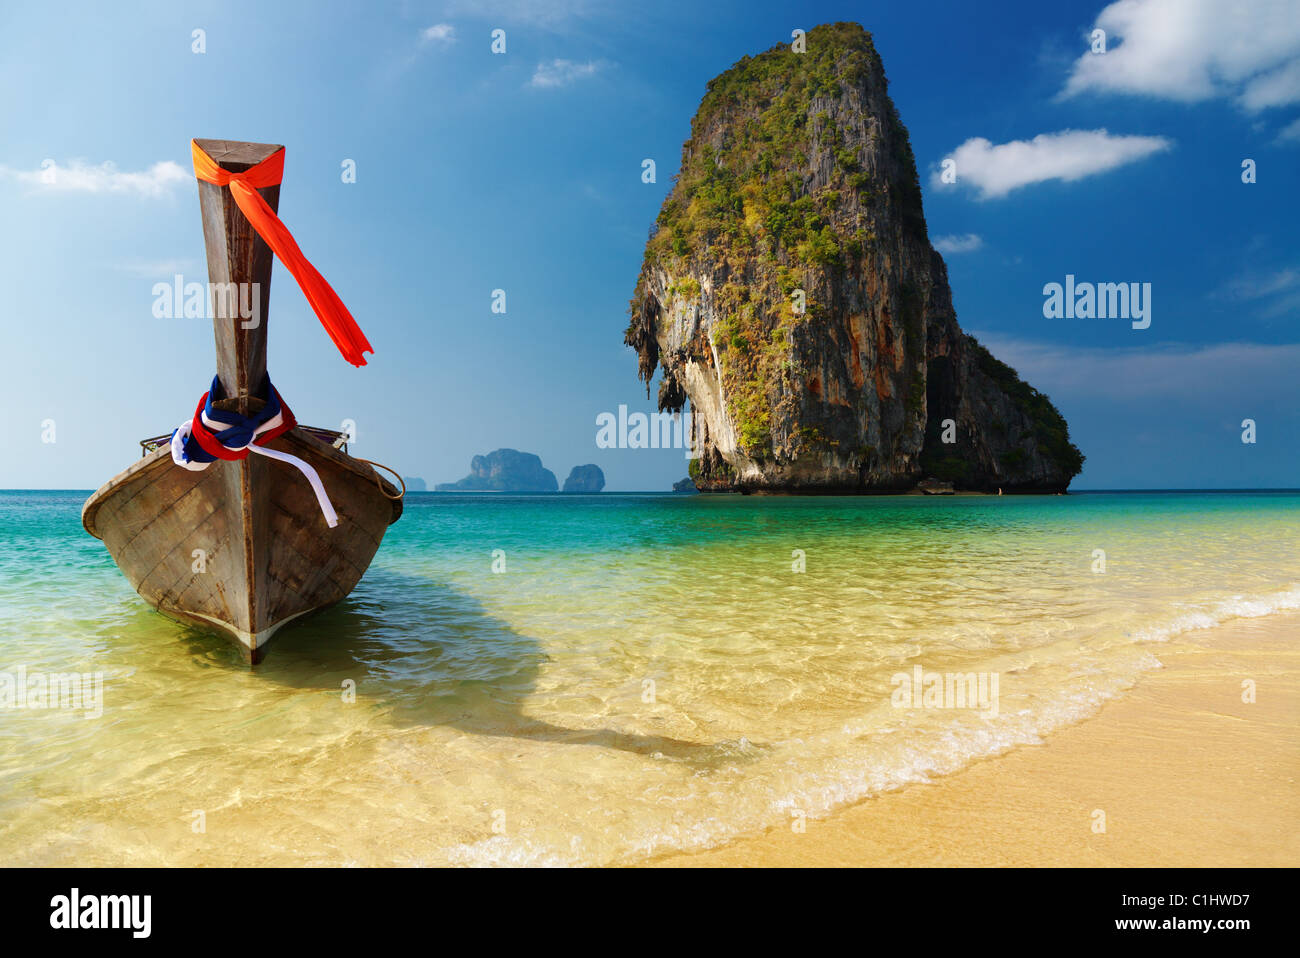 Tropical beach, long tail boat, Andaman Sea, Thailand - Stock Image